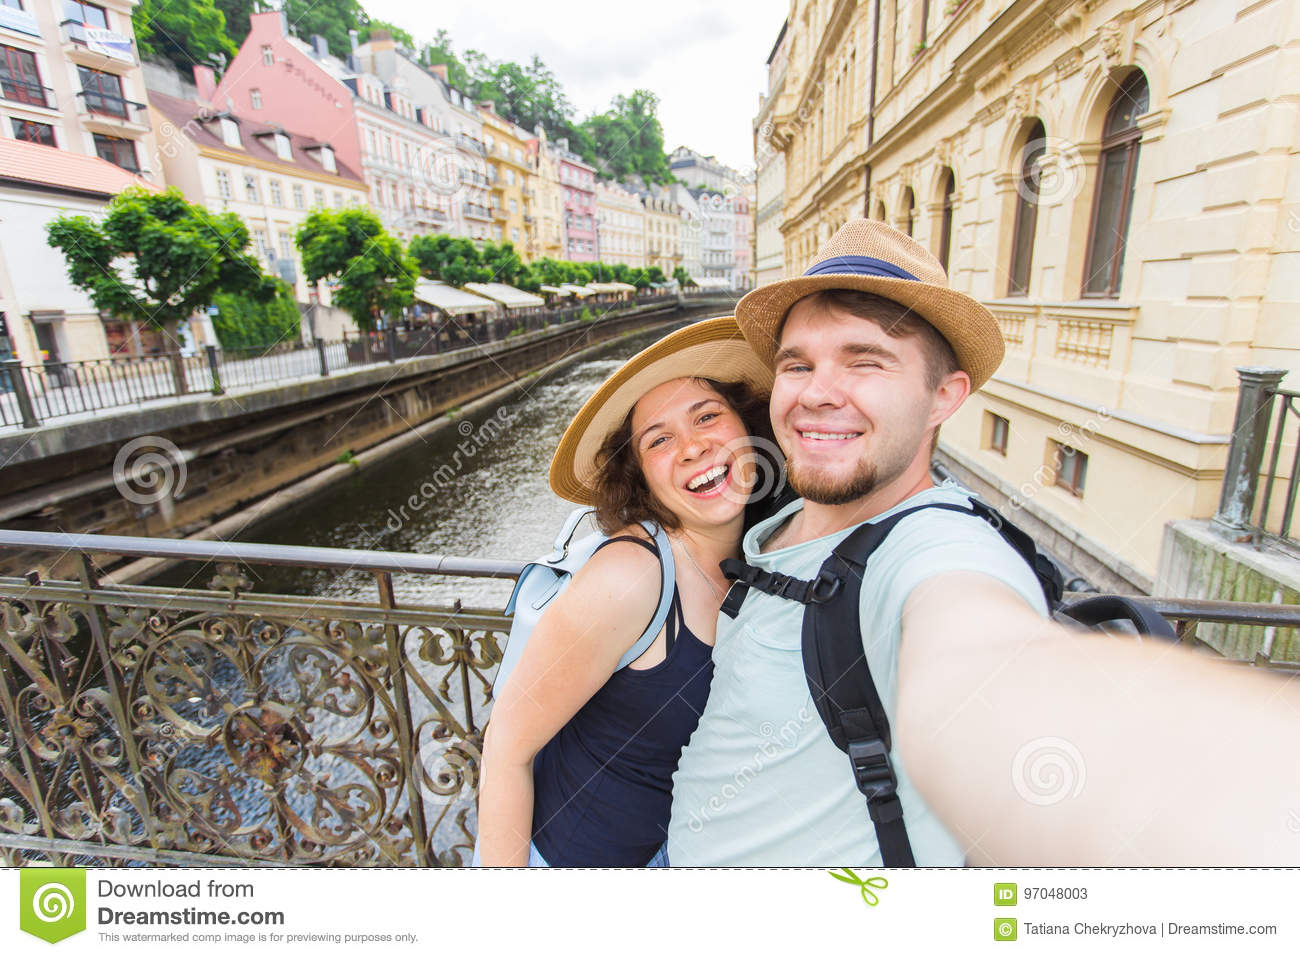 Happy couple, attractive woman and man walking in city and enjoying romance. Lovers making selfie and smiling. Tourists